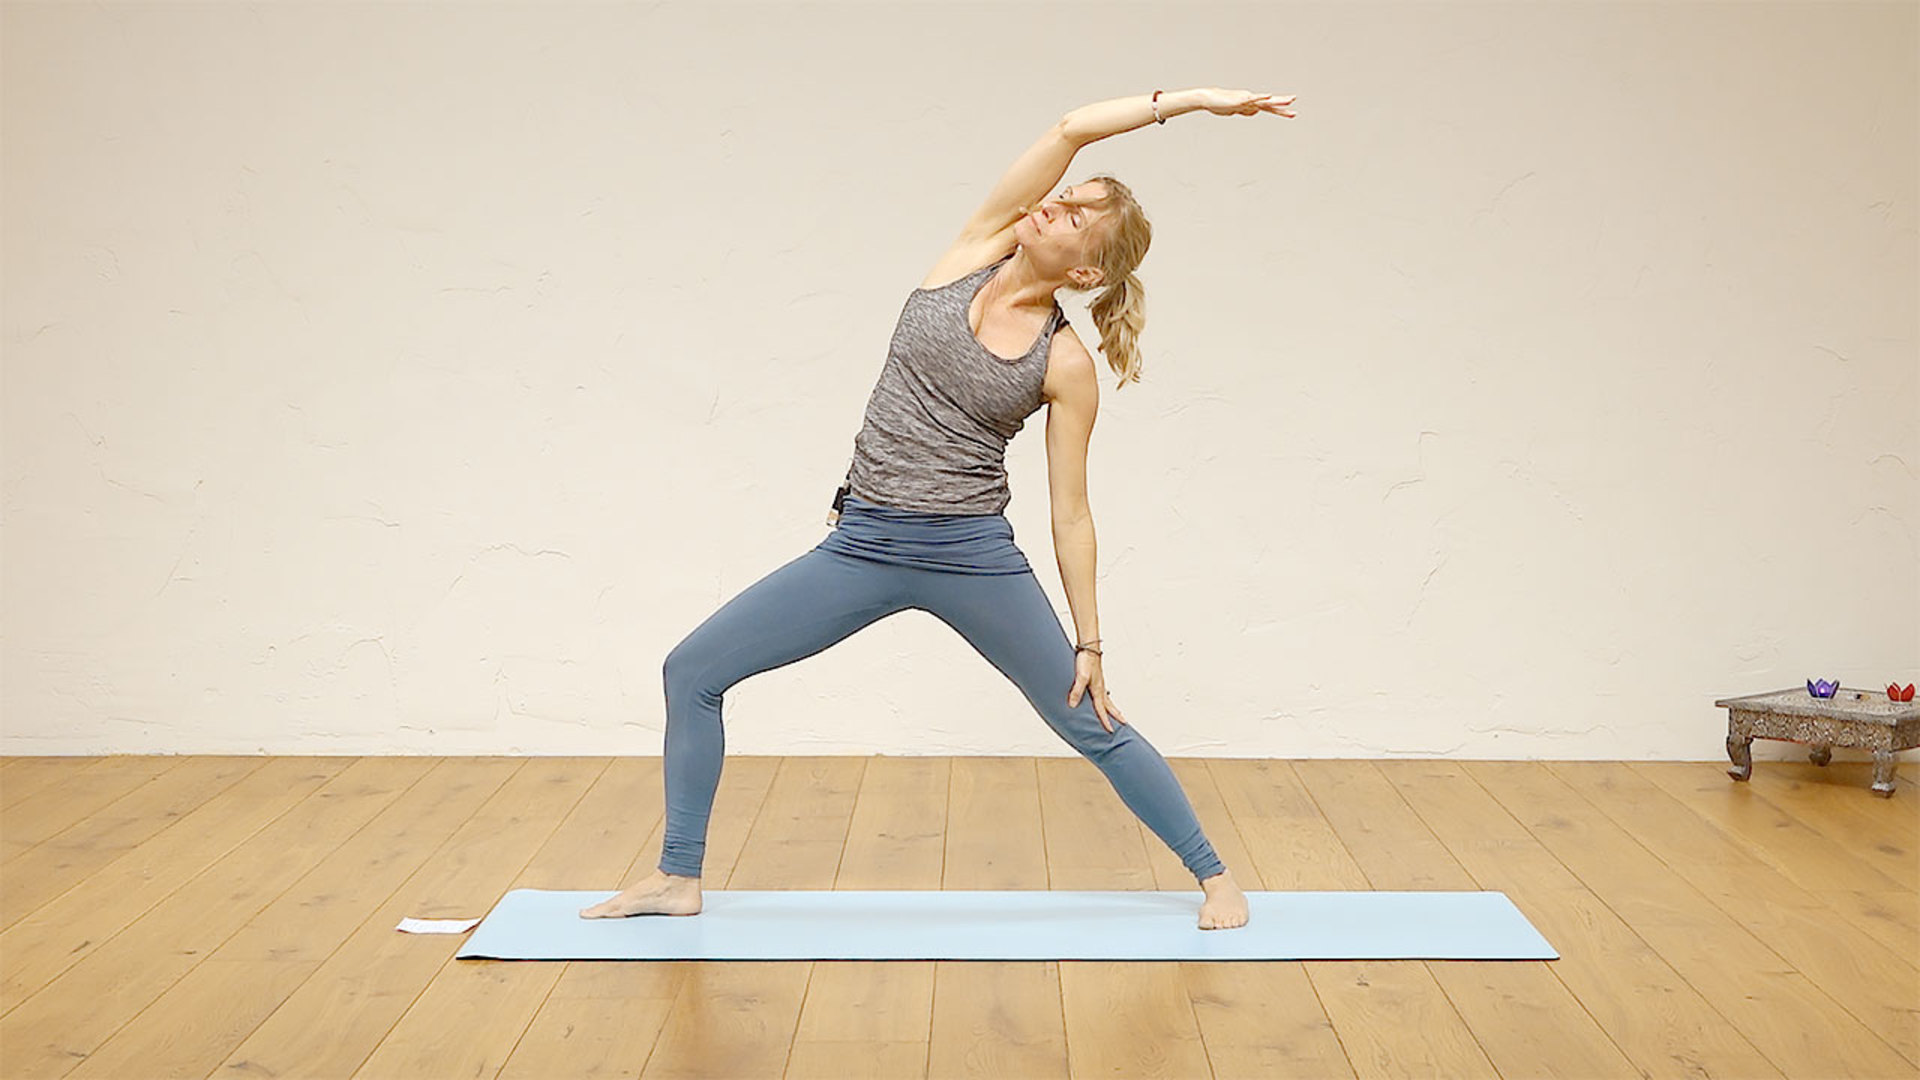 Energy freeing lunch time yoga